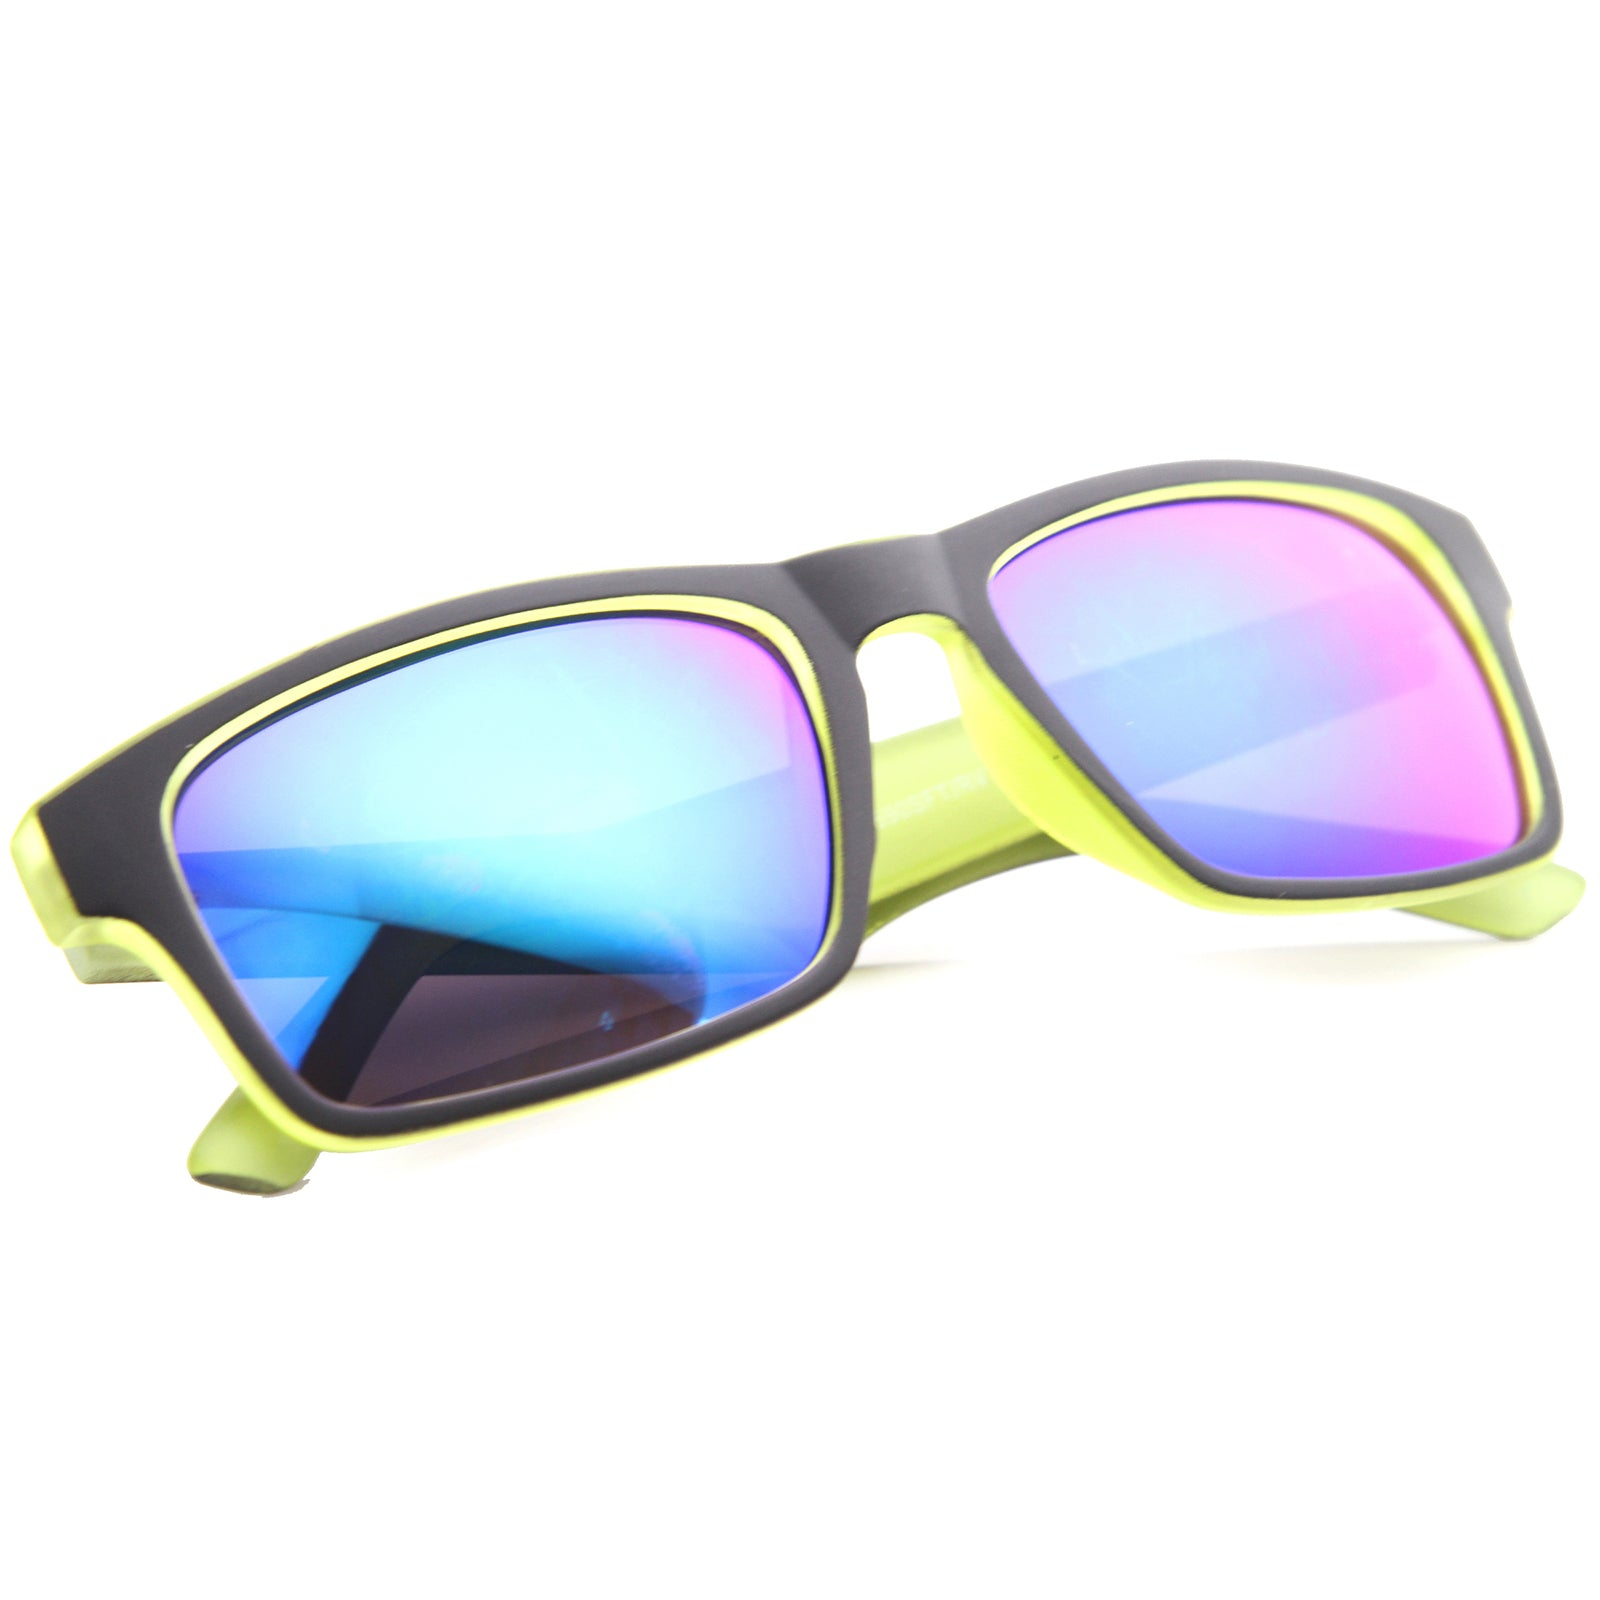 Mens Sport Sunglasses With UV400 Protected Mirrored Lens - sunglass.la - 16